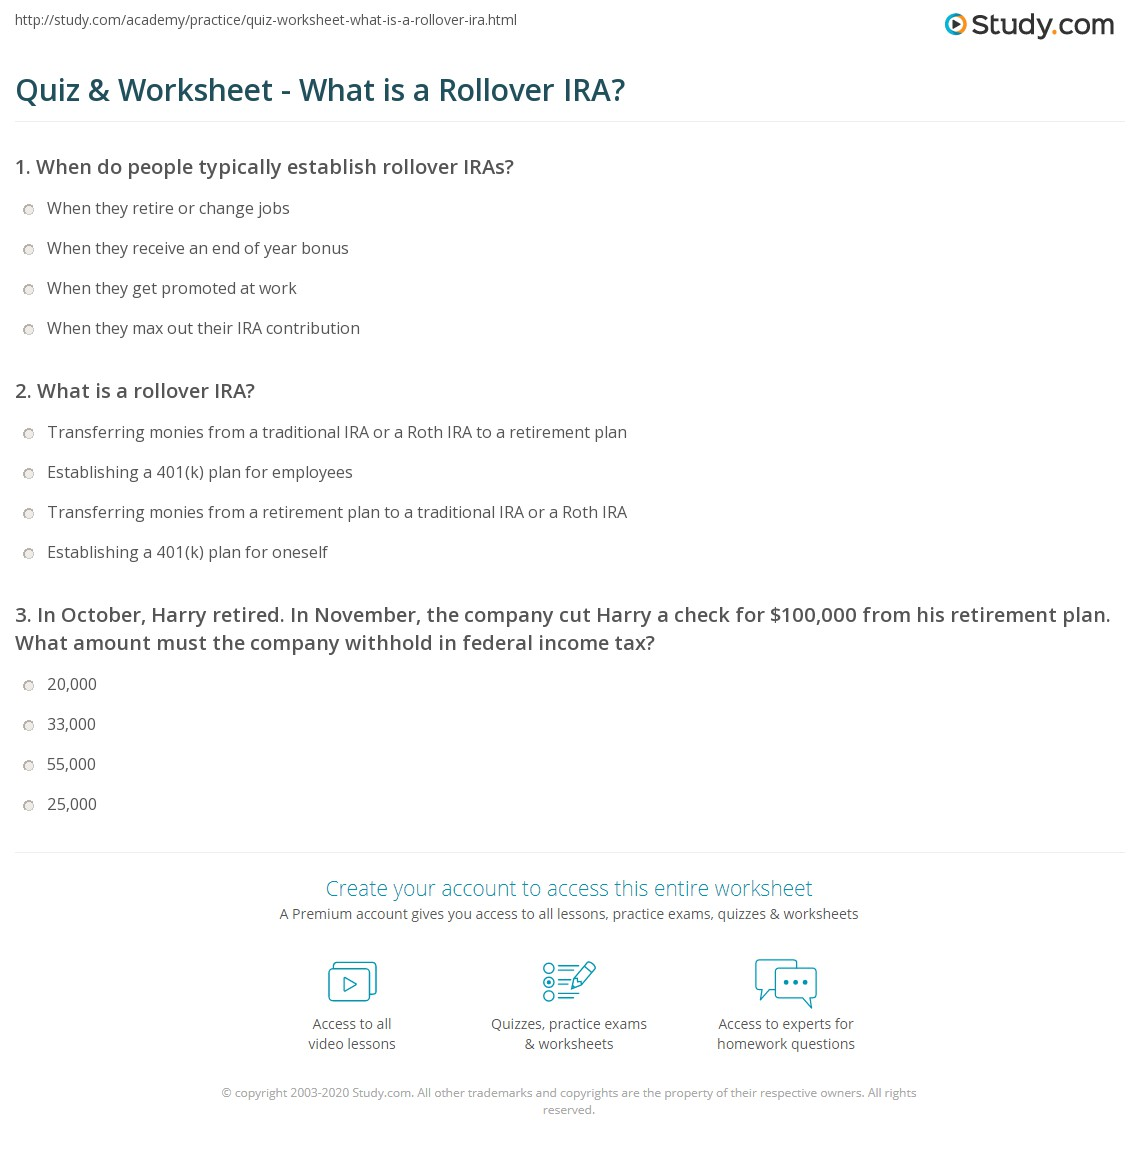 quiz & worksheet - what is a rollover ira? | study